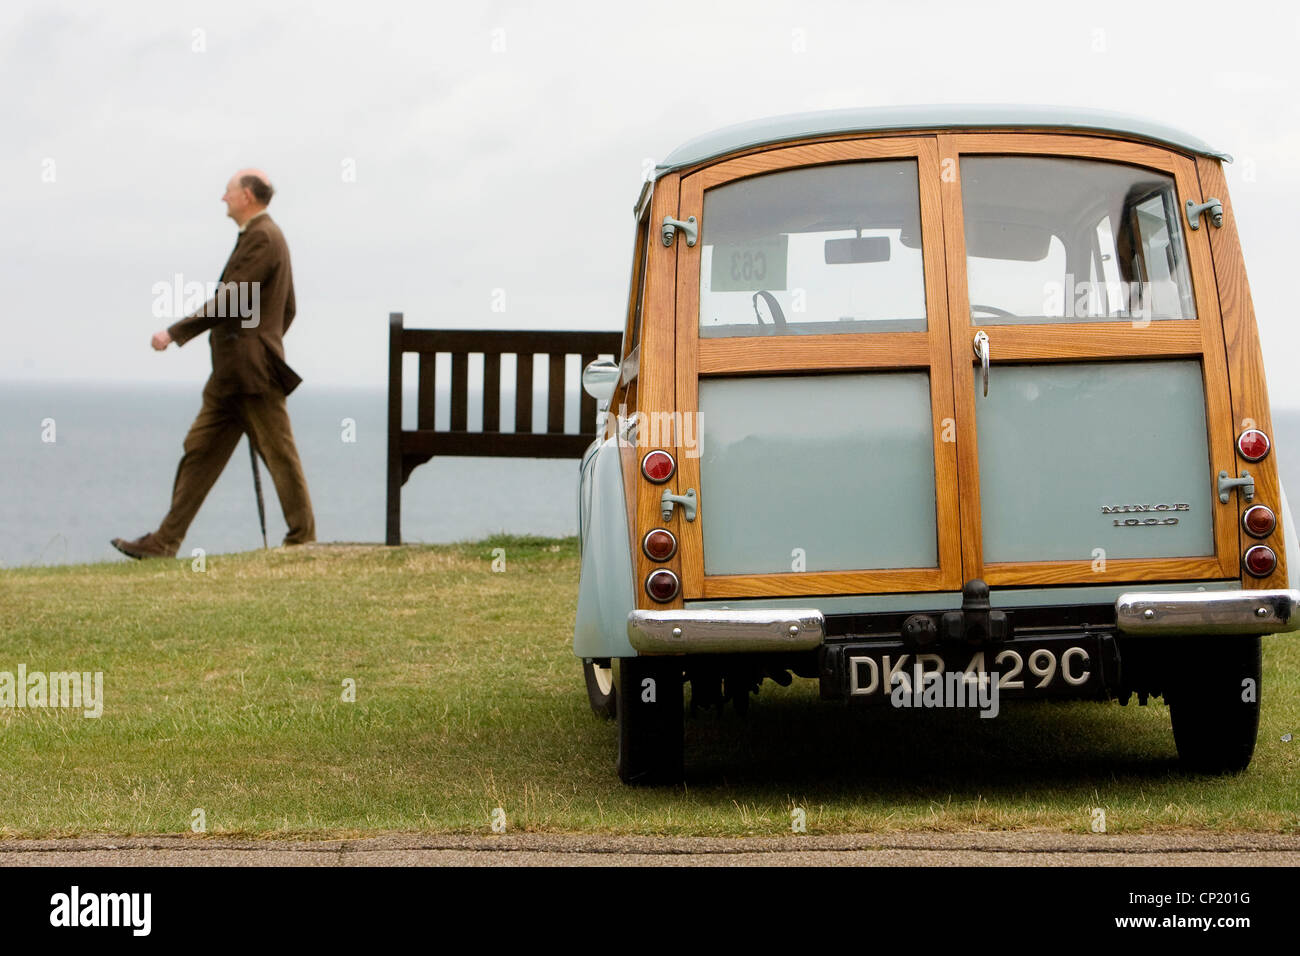 Morris Minor Traveller, Whitstable, Kent, England, UK - Stock Image